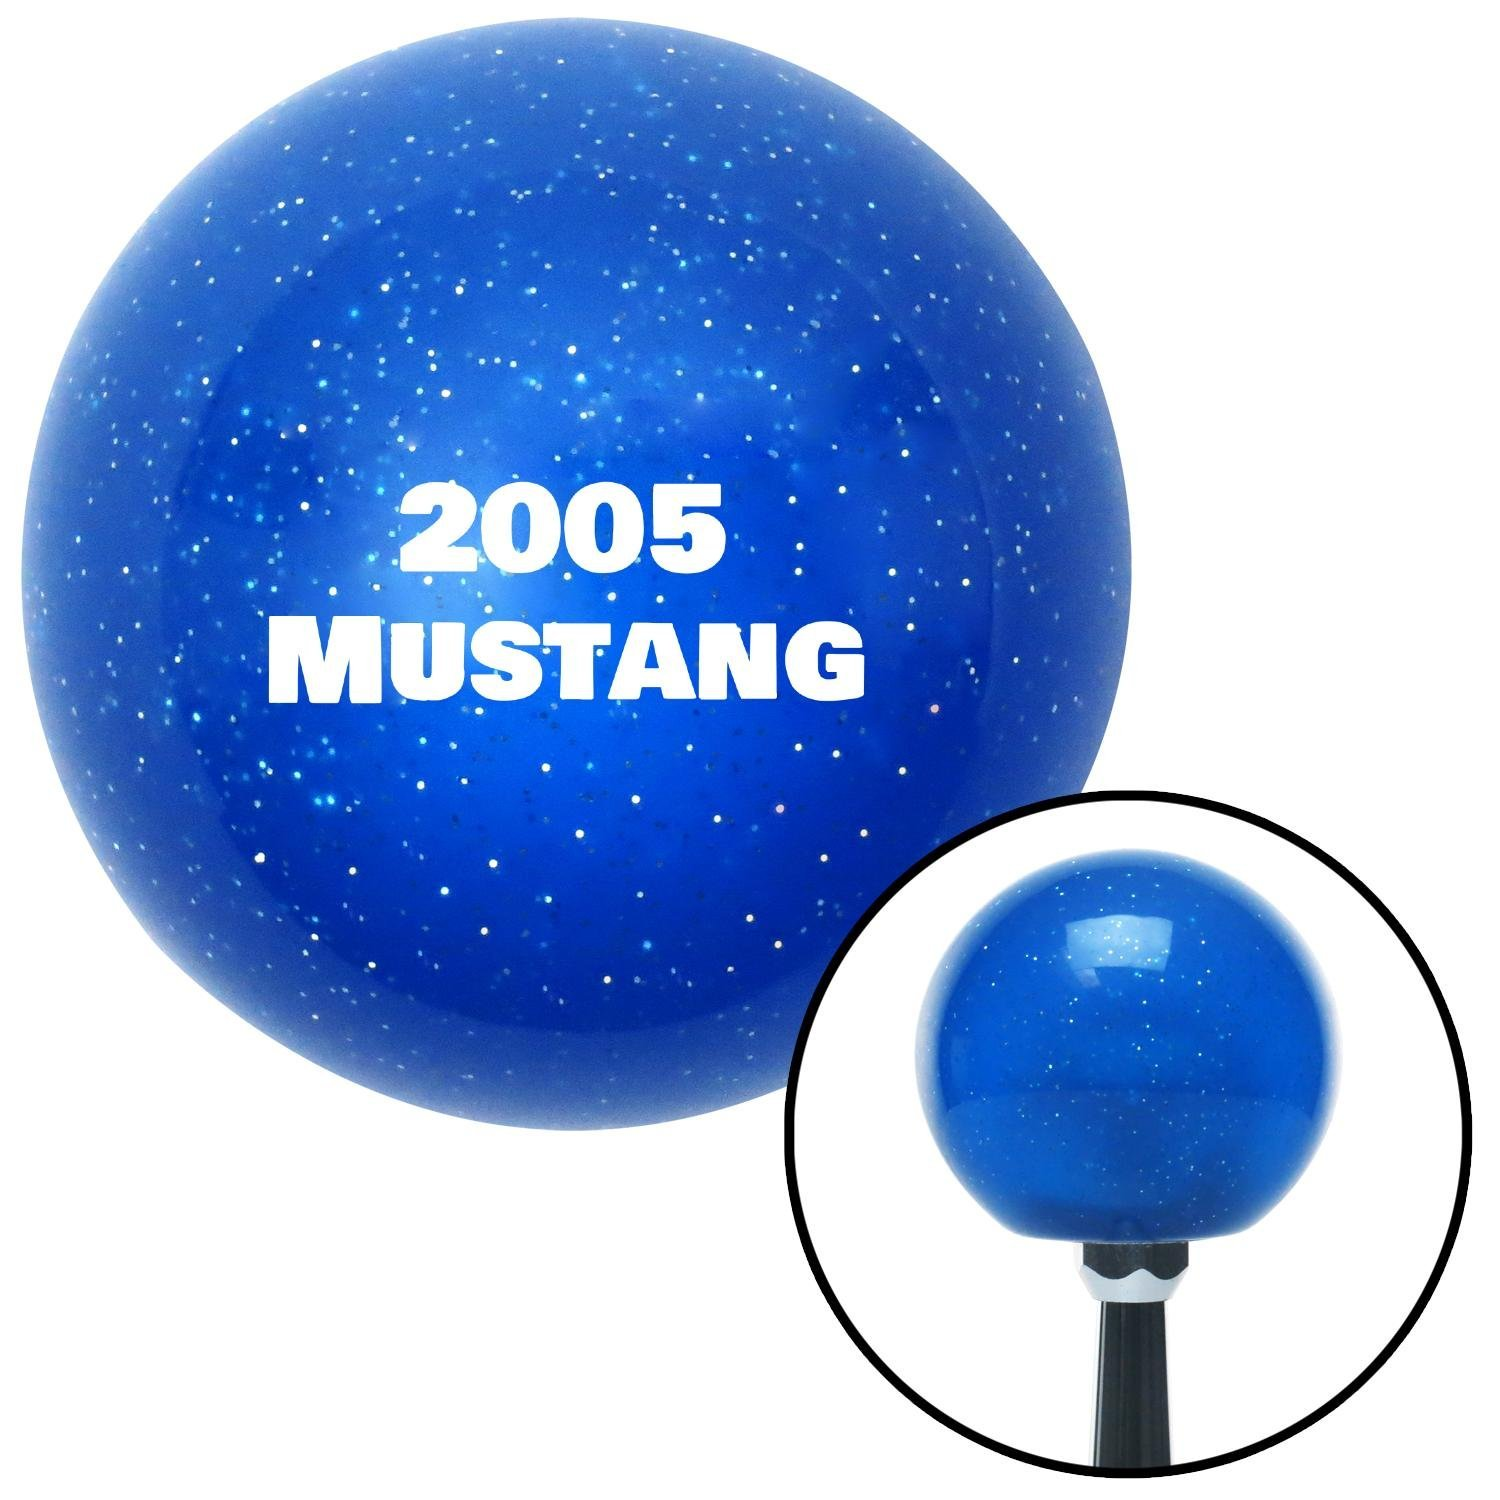 American Shifter 141059 Blue Metal Flake Shift Knob with M16 x 1.5 Insert White 2005 Mustang